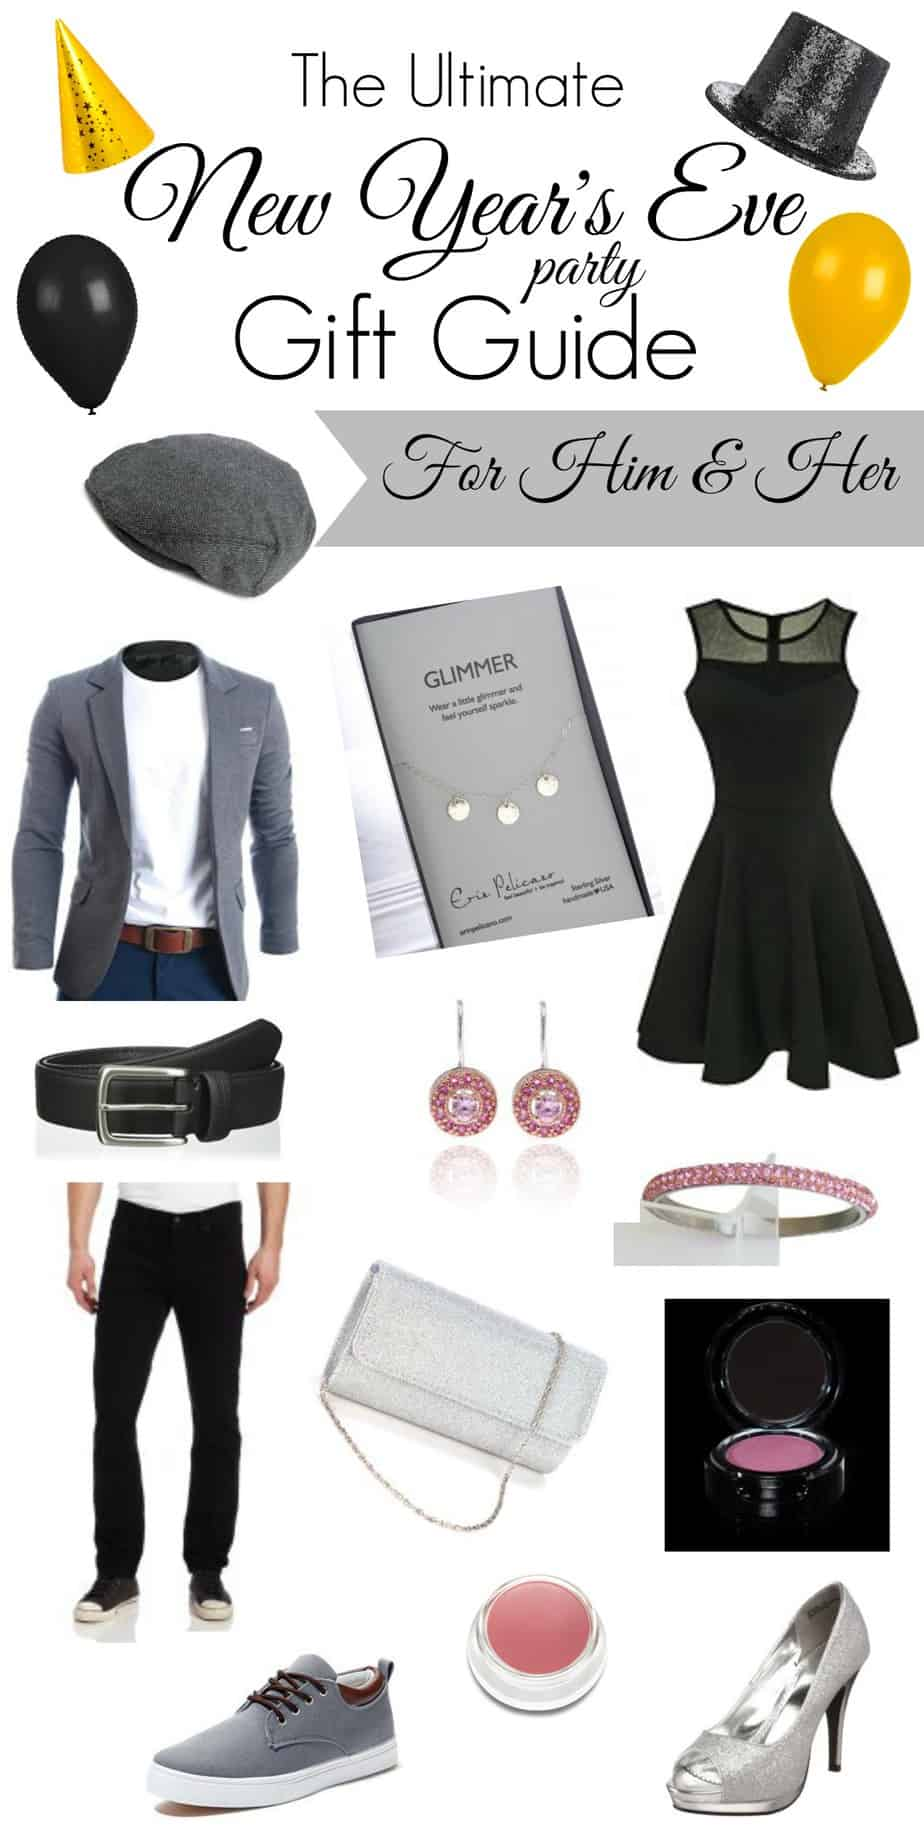 The Ultimate New Years Eve Party Gift Guide For Him & Her